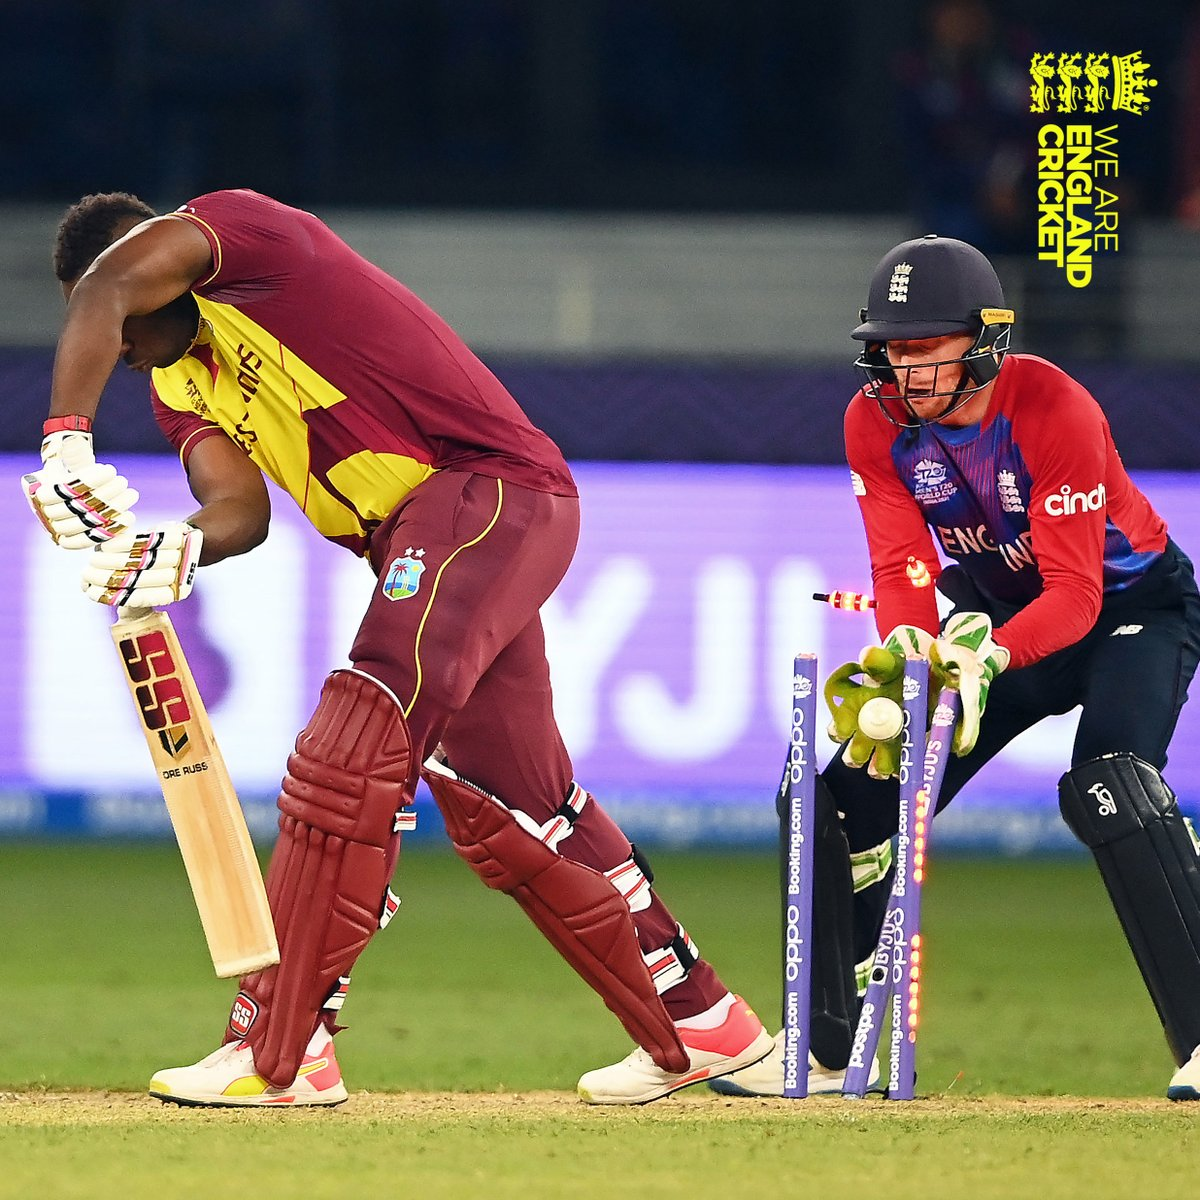 So clinical 👏  West Indies 5⃣5⃣ all out  Scorecard: https://t.co/QRRsvqQINR  #T20WorldCup   #EnglandCricket https://t.co/MHcF43jj4o